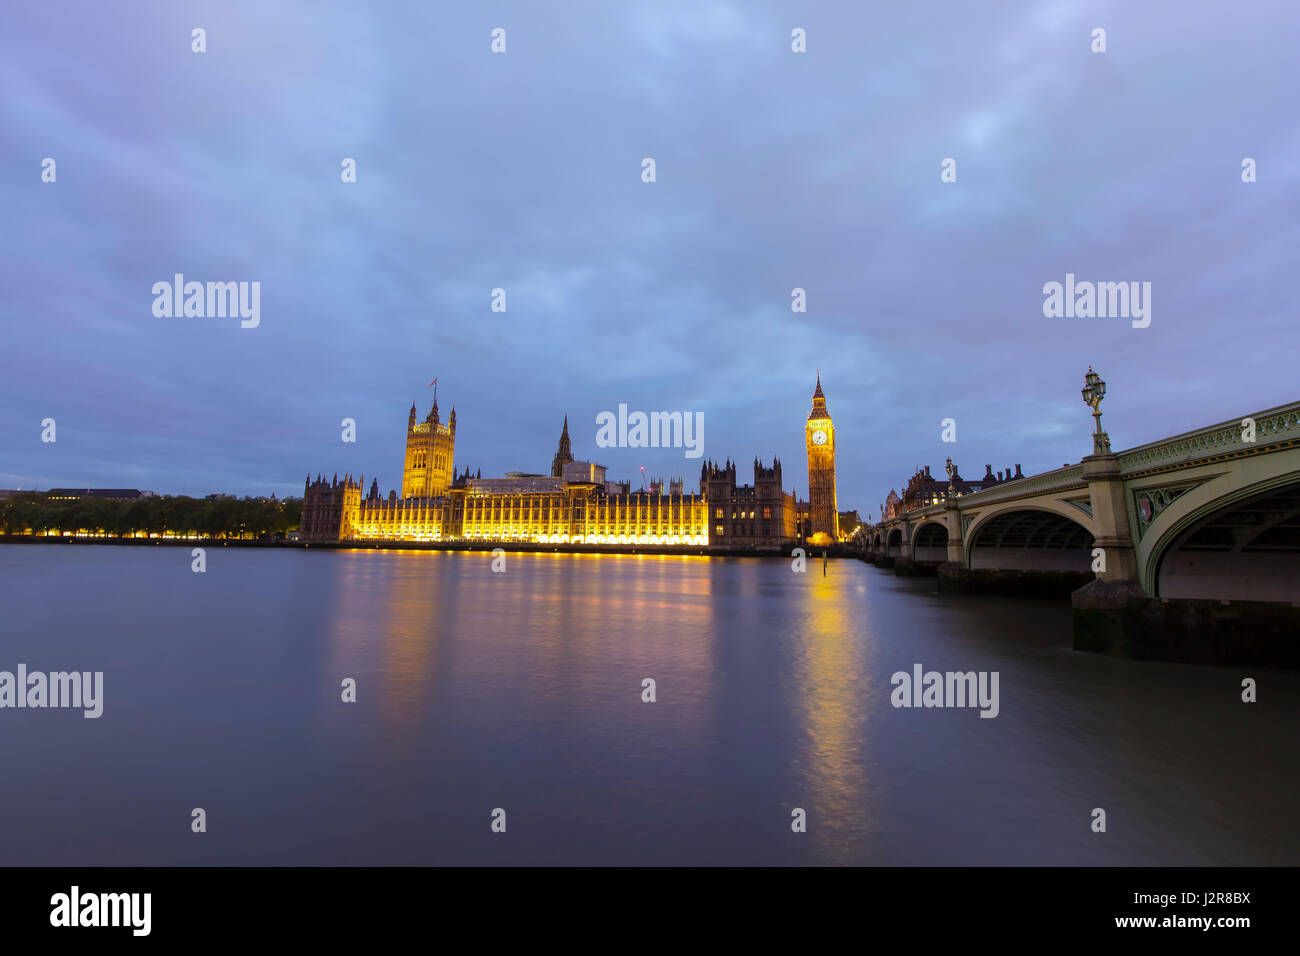 View of the tower of Big Ben and parliament buildings across the Thames river in Westminster, London. Photo taken on the 21st of March while buildings Stock Photo